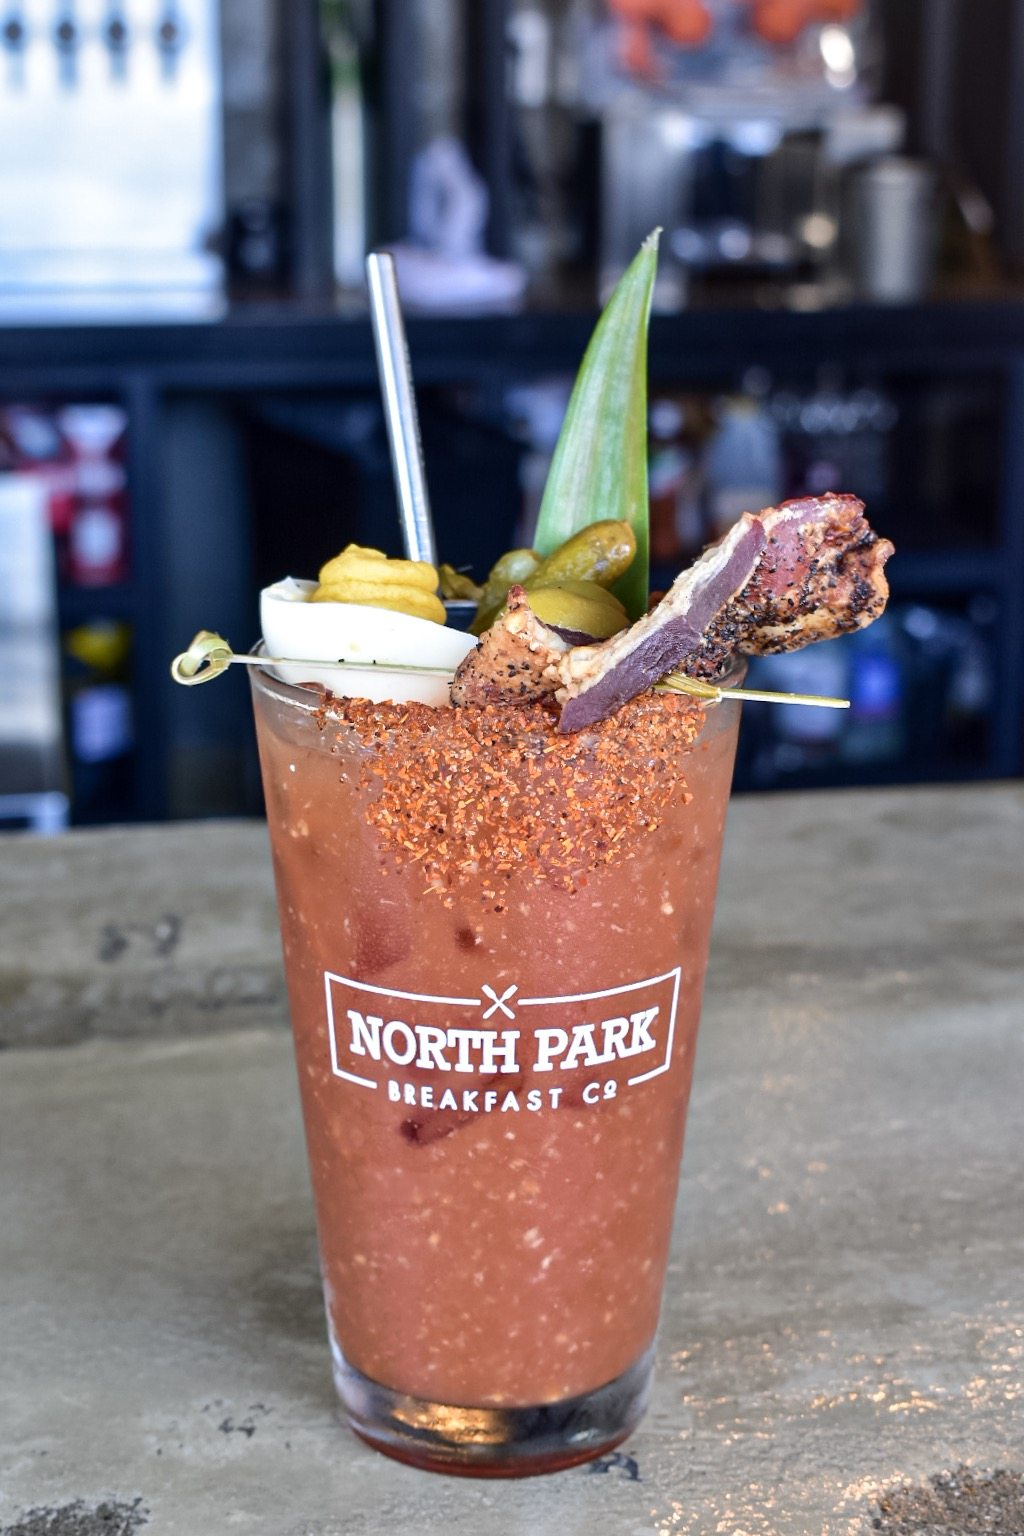 bloody mary north park breakftas co bloody mary obsessed.jpg